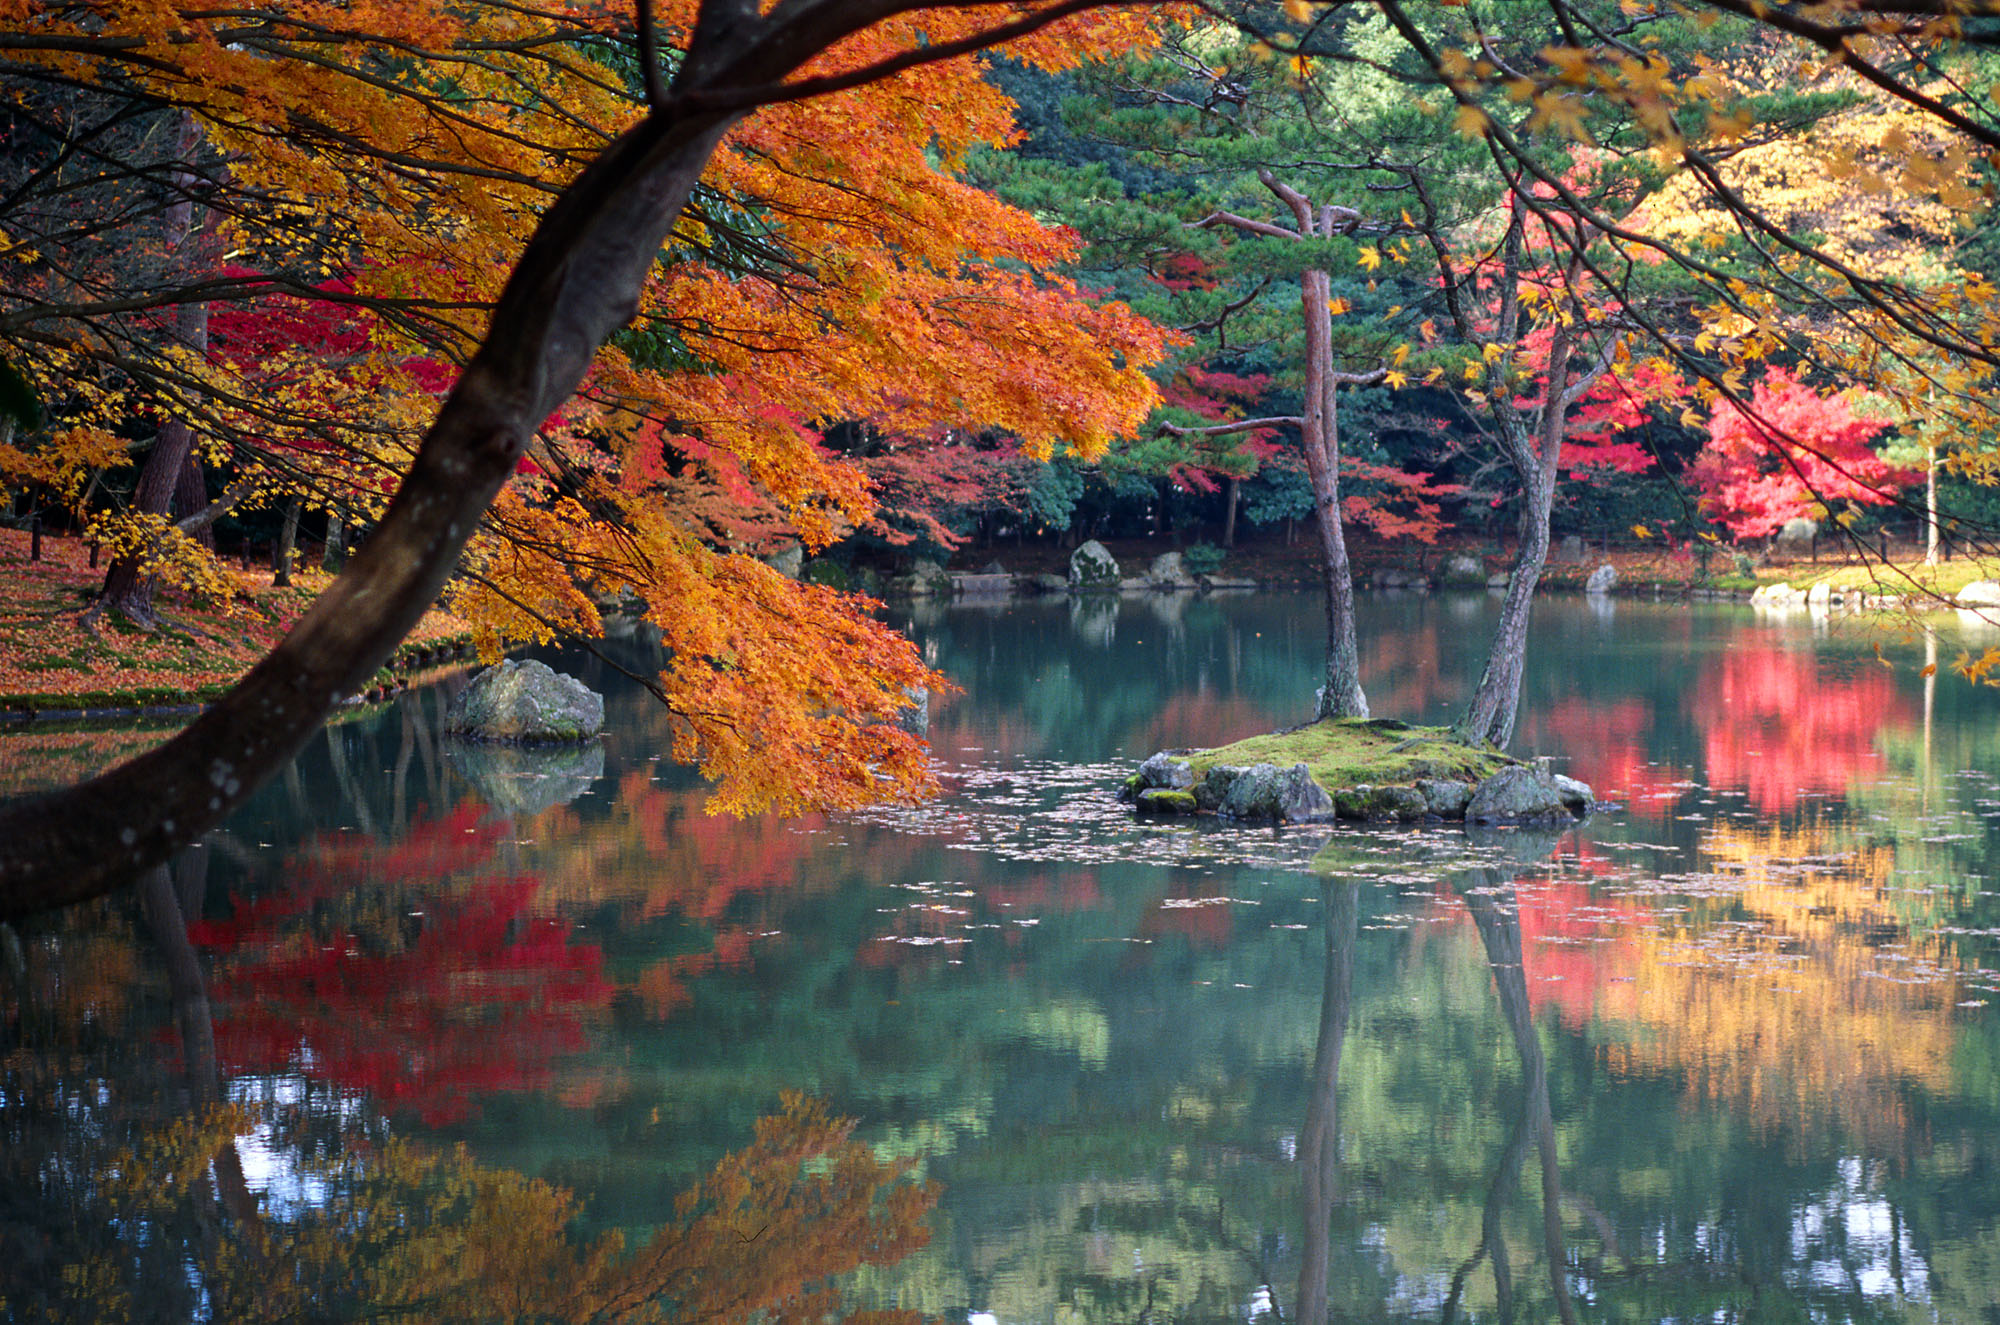 http://upload.wikimedia.org/wikipedia/commons/5/50/KyotoAutumn.jpg